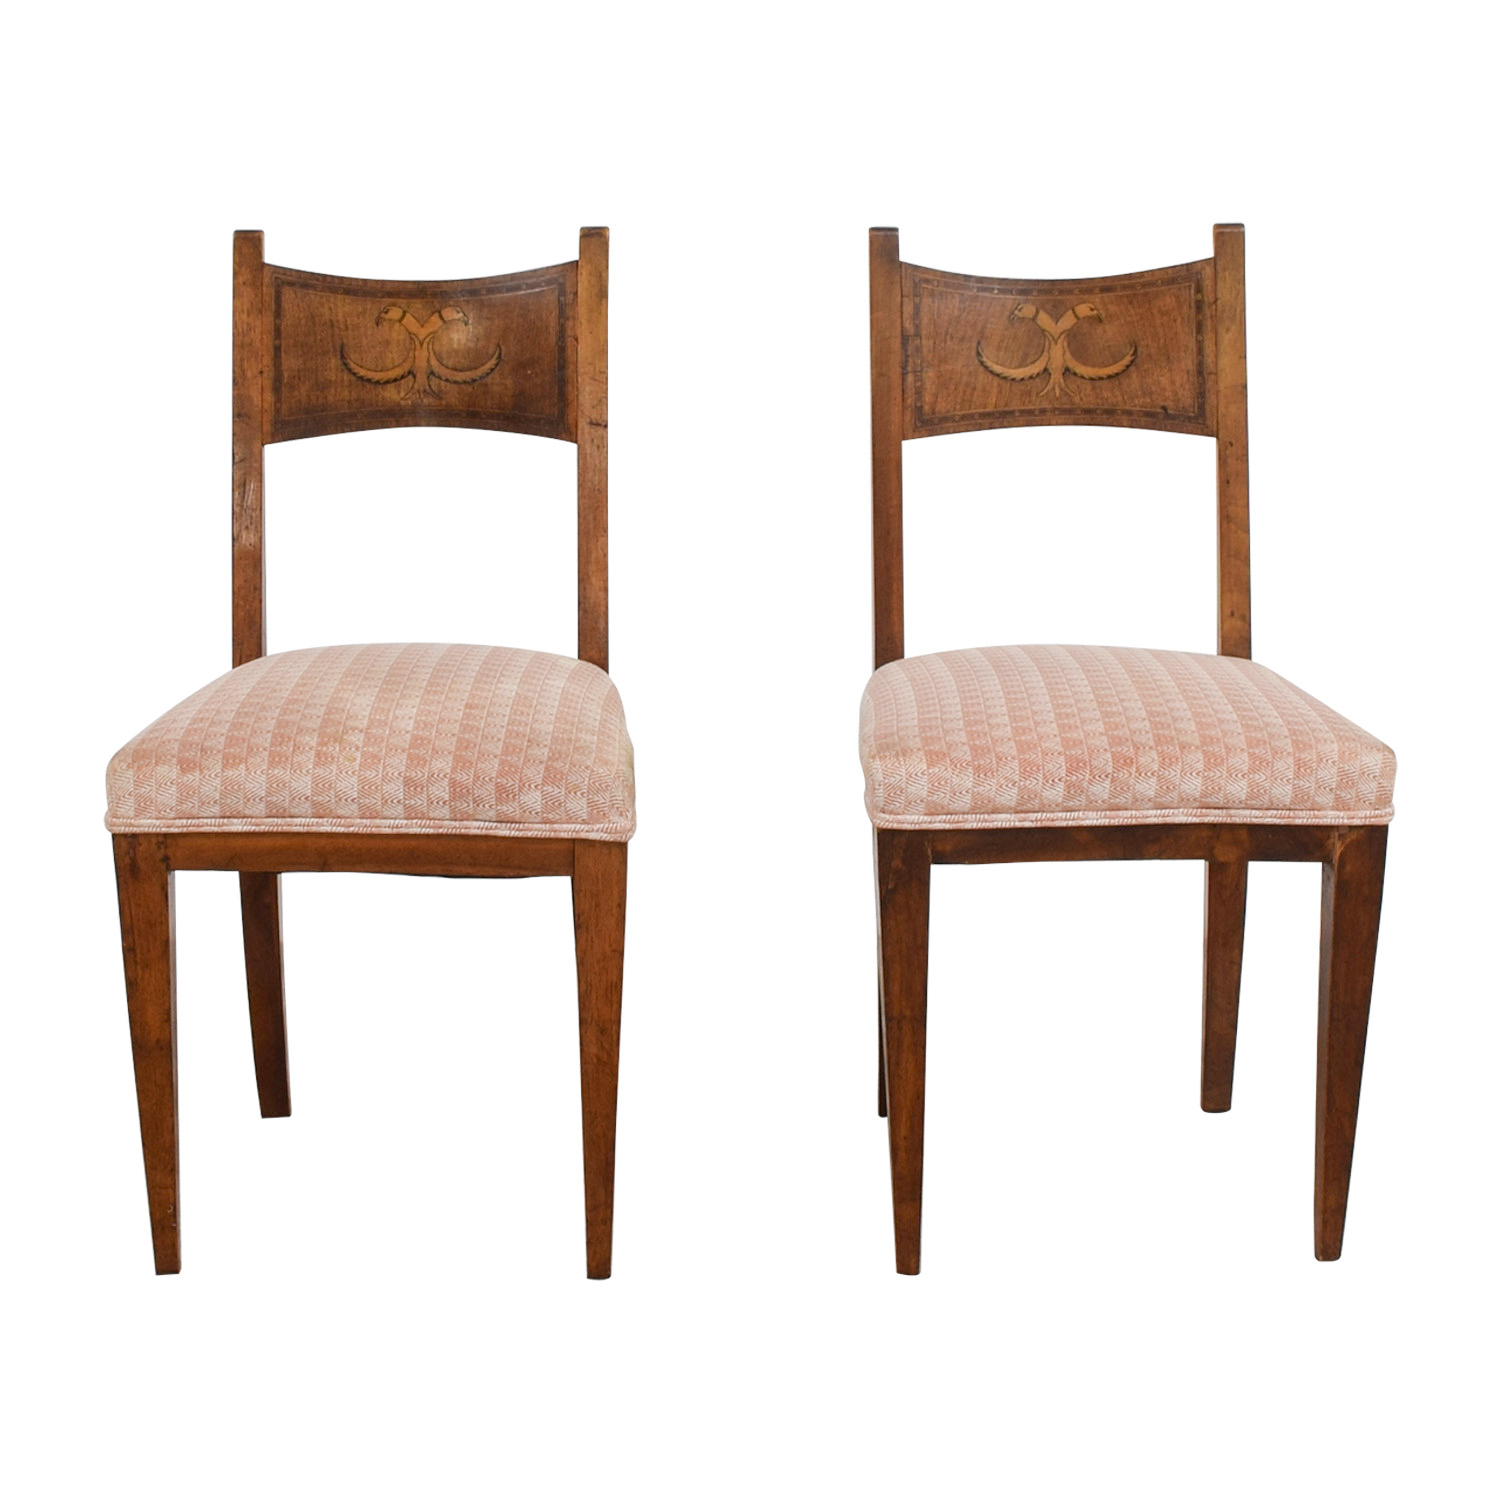 Antique Pink Upholstered Chairs with Bird Wood Inlay nyc